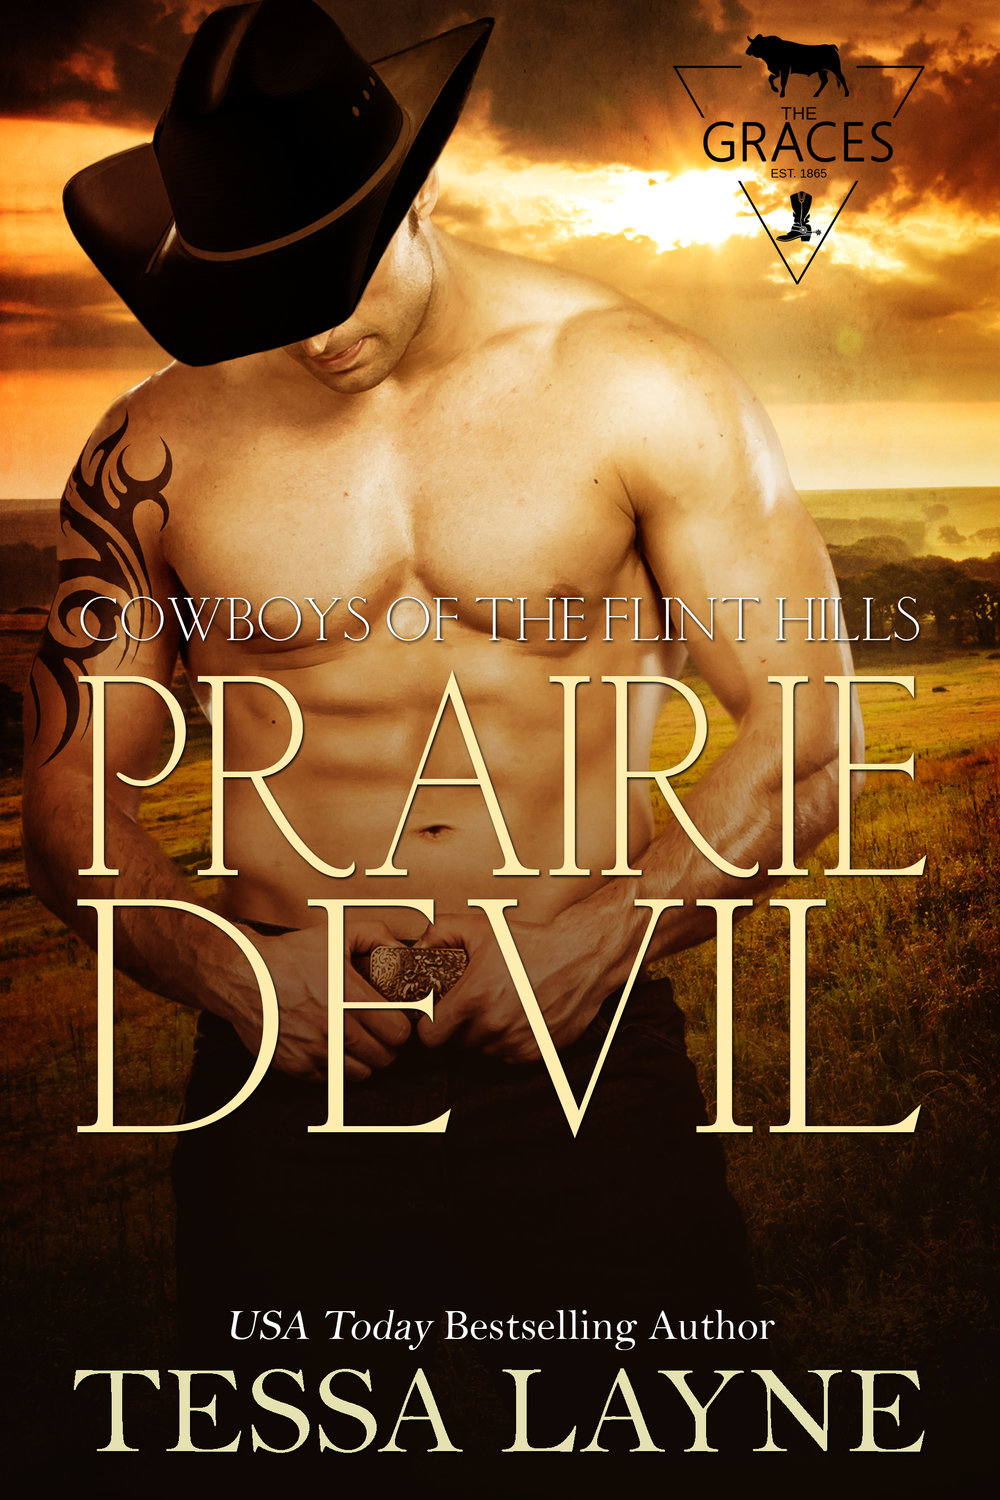 He's the Devil she shouldn't want - Thrown out of the house when he was seventeen, bad boy Colton Kincaid left Prairie in the rear-view mirror and never looked back. Determined to make something of himself, he scrapped his way to superstardom at the top of the rodeo circuit, leaving behind a string of broken hearts. He's perfectly happy with his no-strings-attached life until a chance encounter with hometown good girl Lydia Grace leaves him questioning everything and wanting a shot at redemption